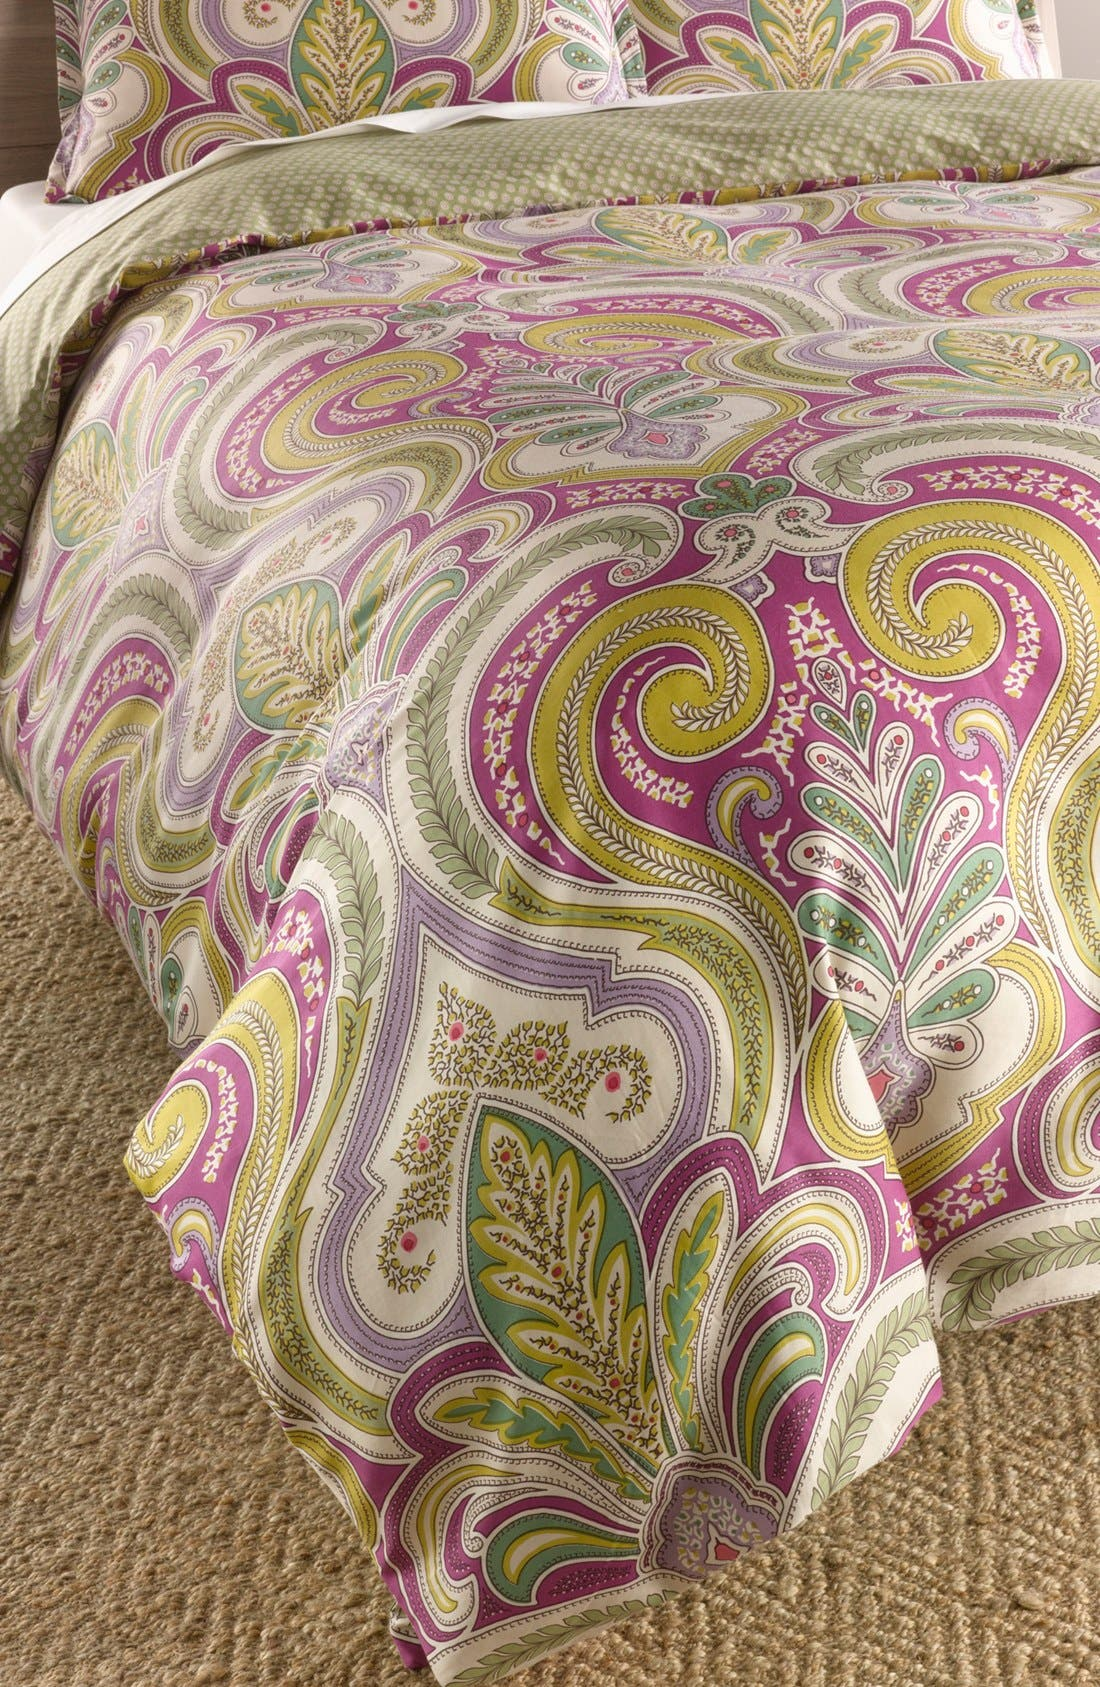 Main Image - Echo 'Vineyard' Duvet Cover